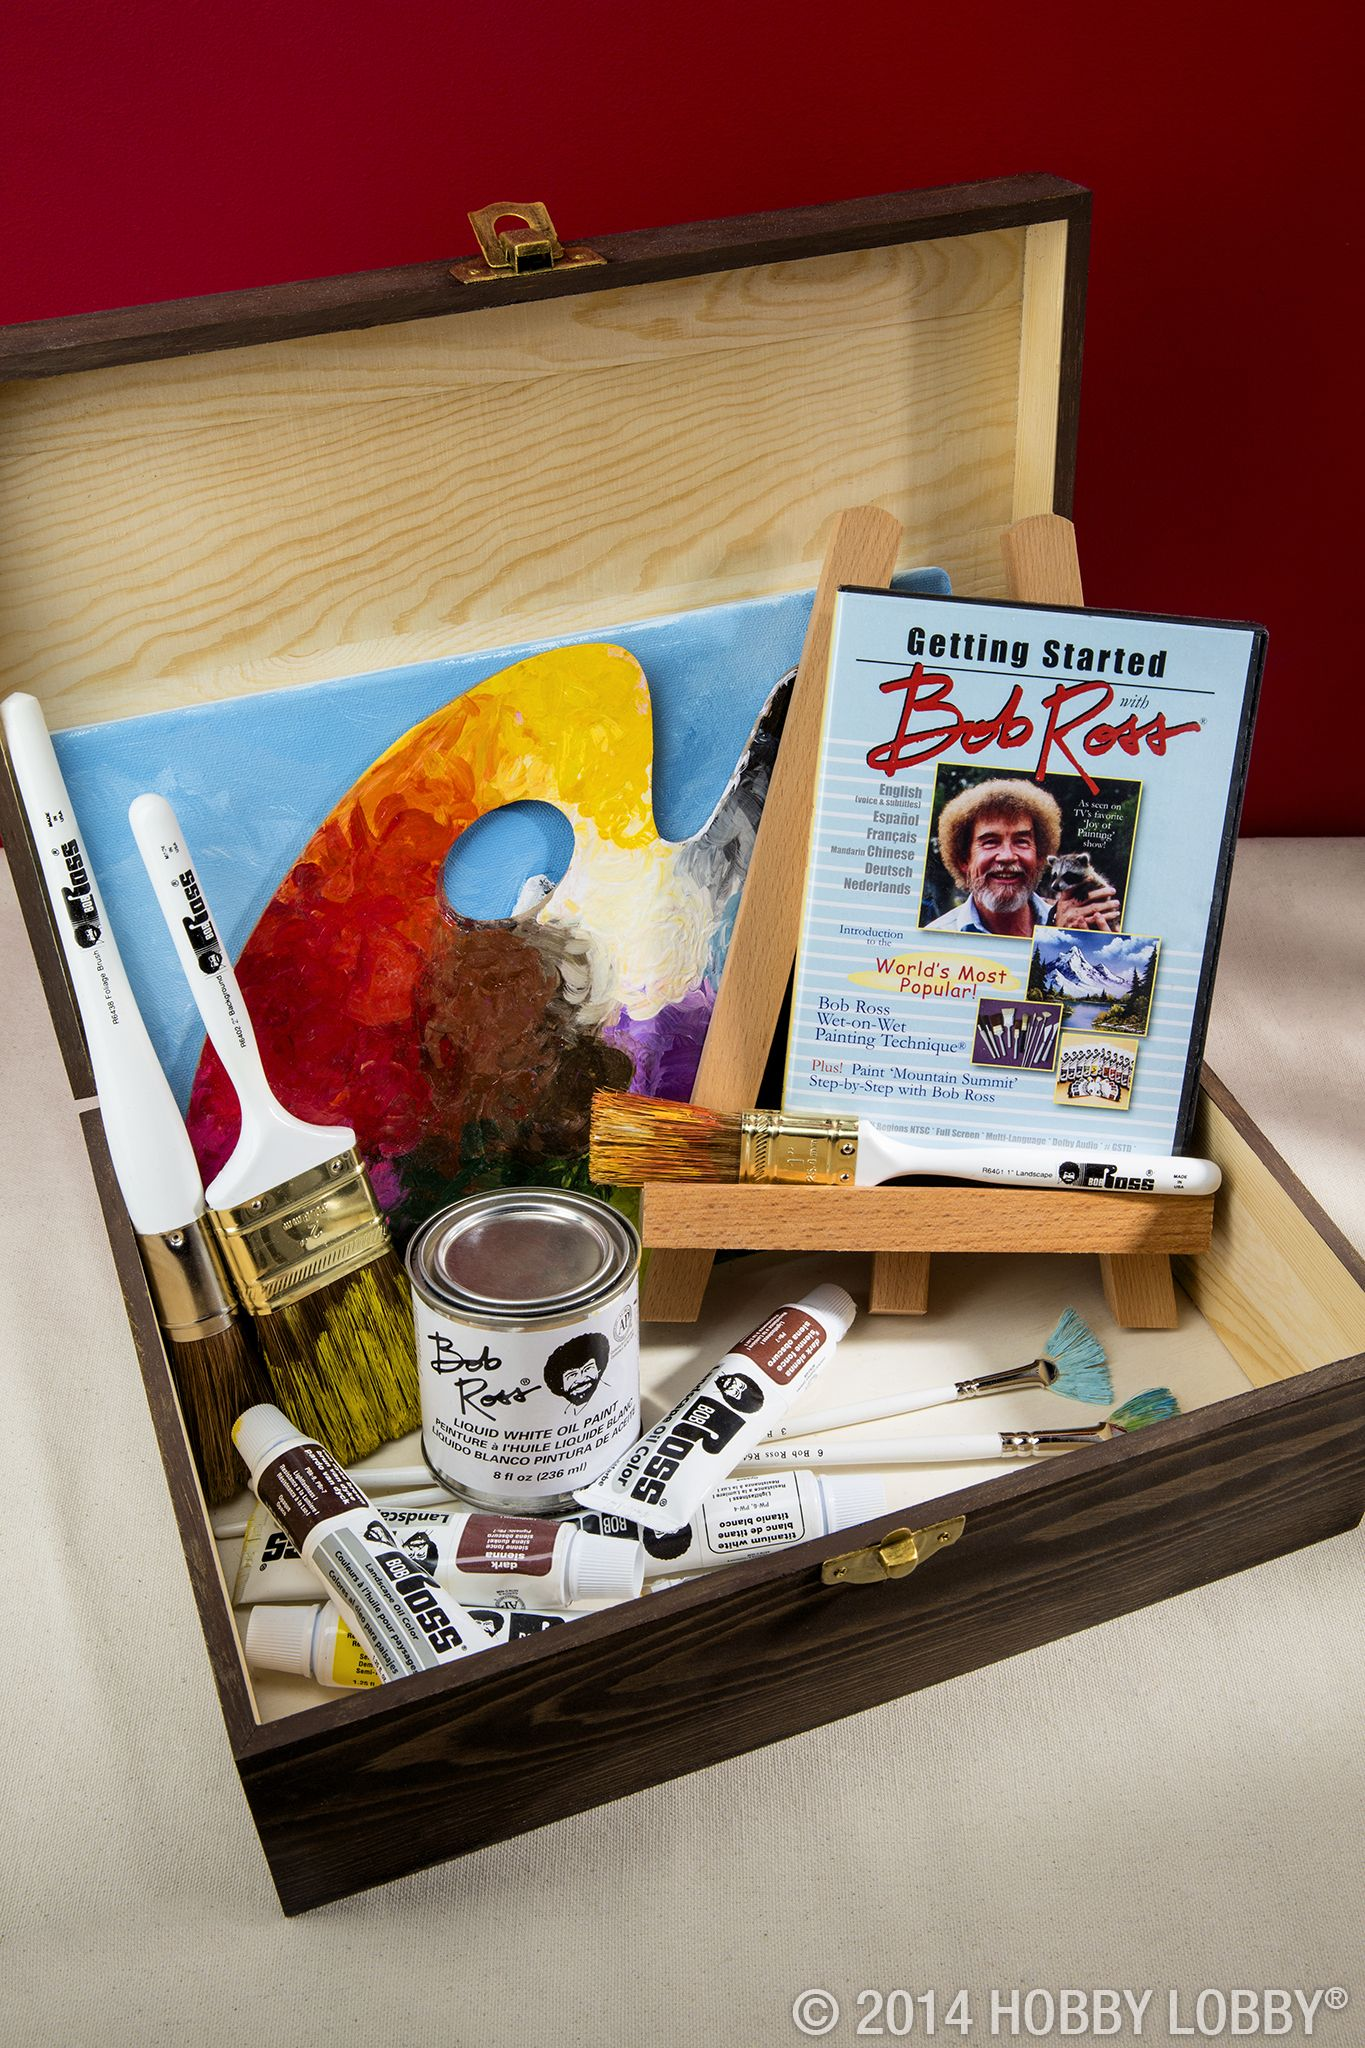 The Joy Of Painting Host Bob Ross Has A Fabulous Collection Of Art